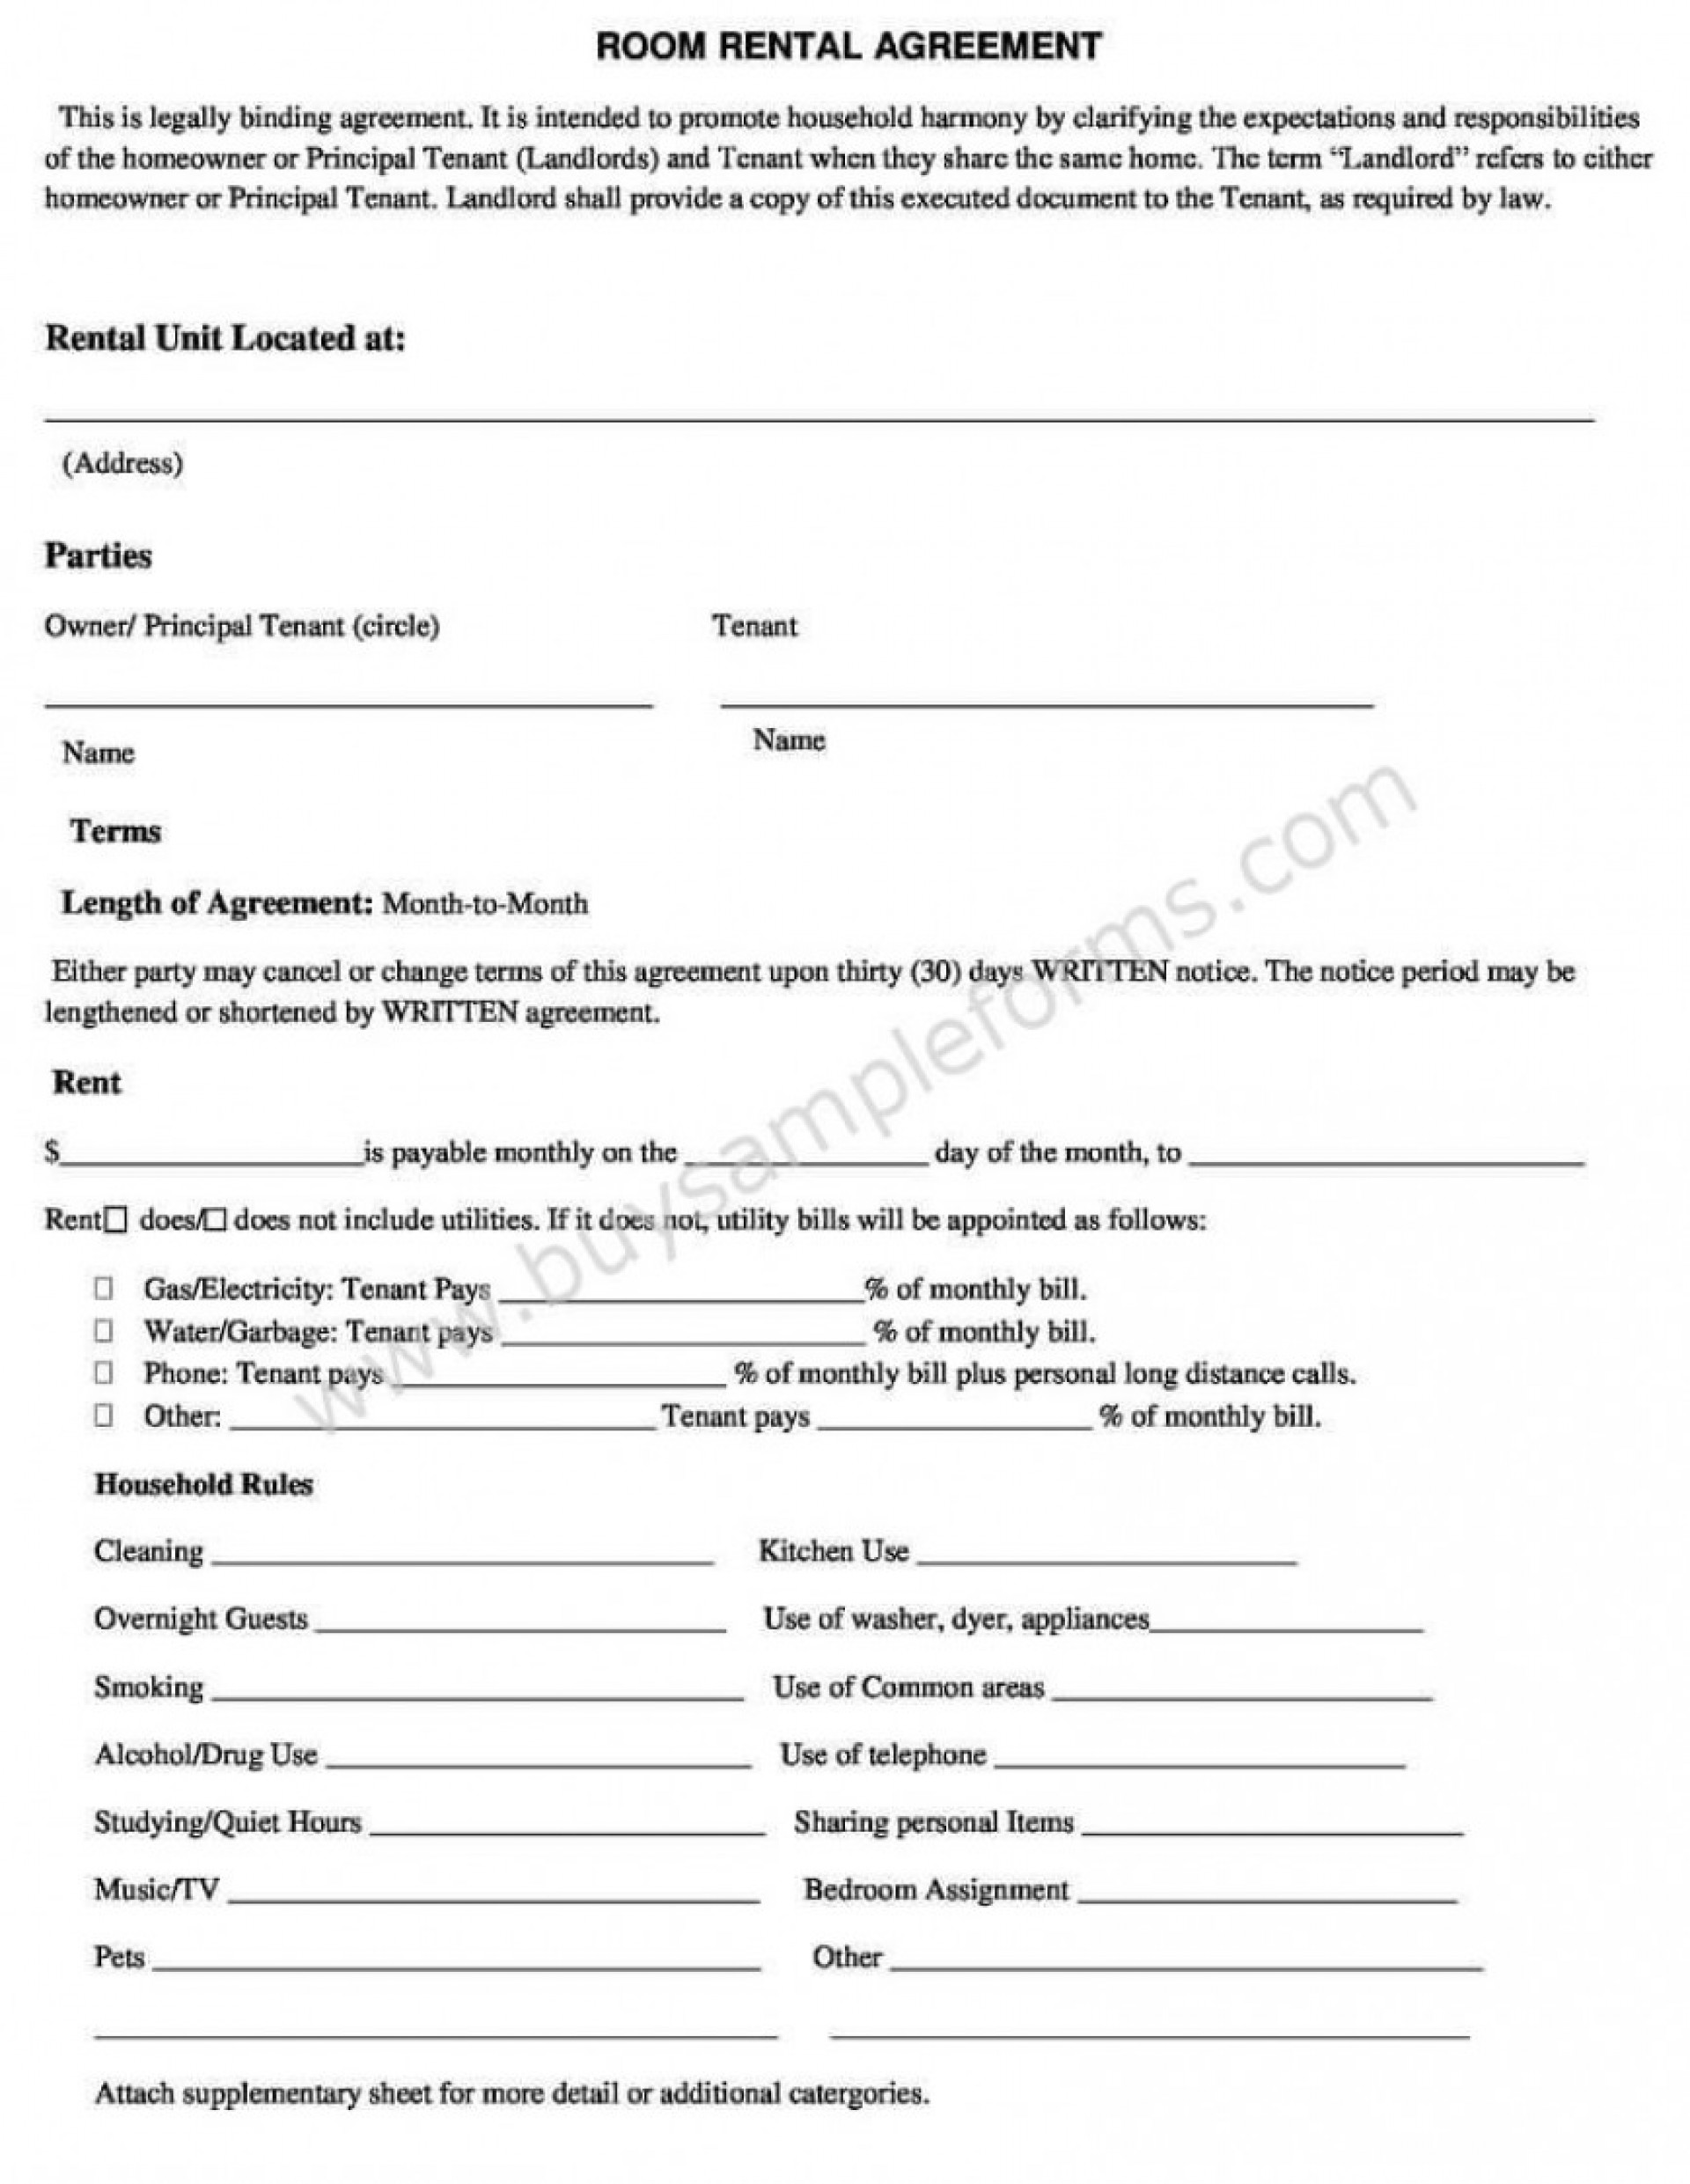 003 Marvelou Free Rental Agreement Template Word High Resolution  Room Uk House Rent Format In Download1920